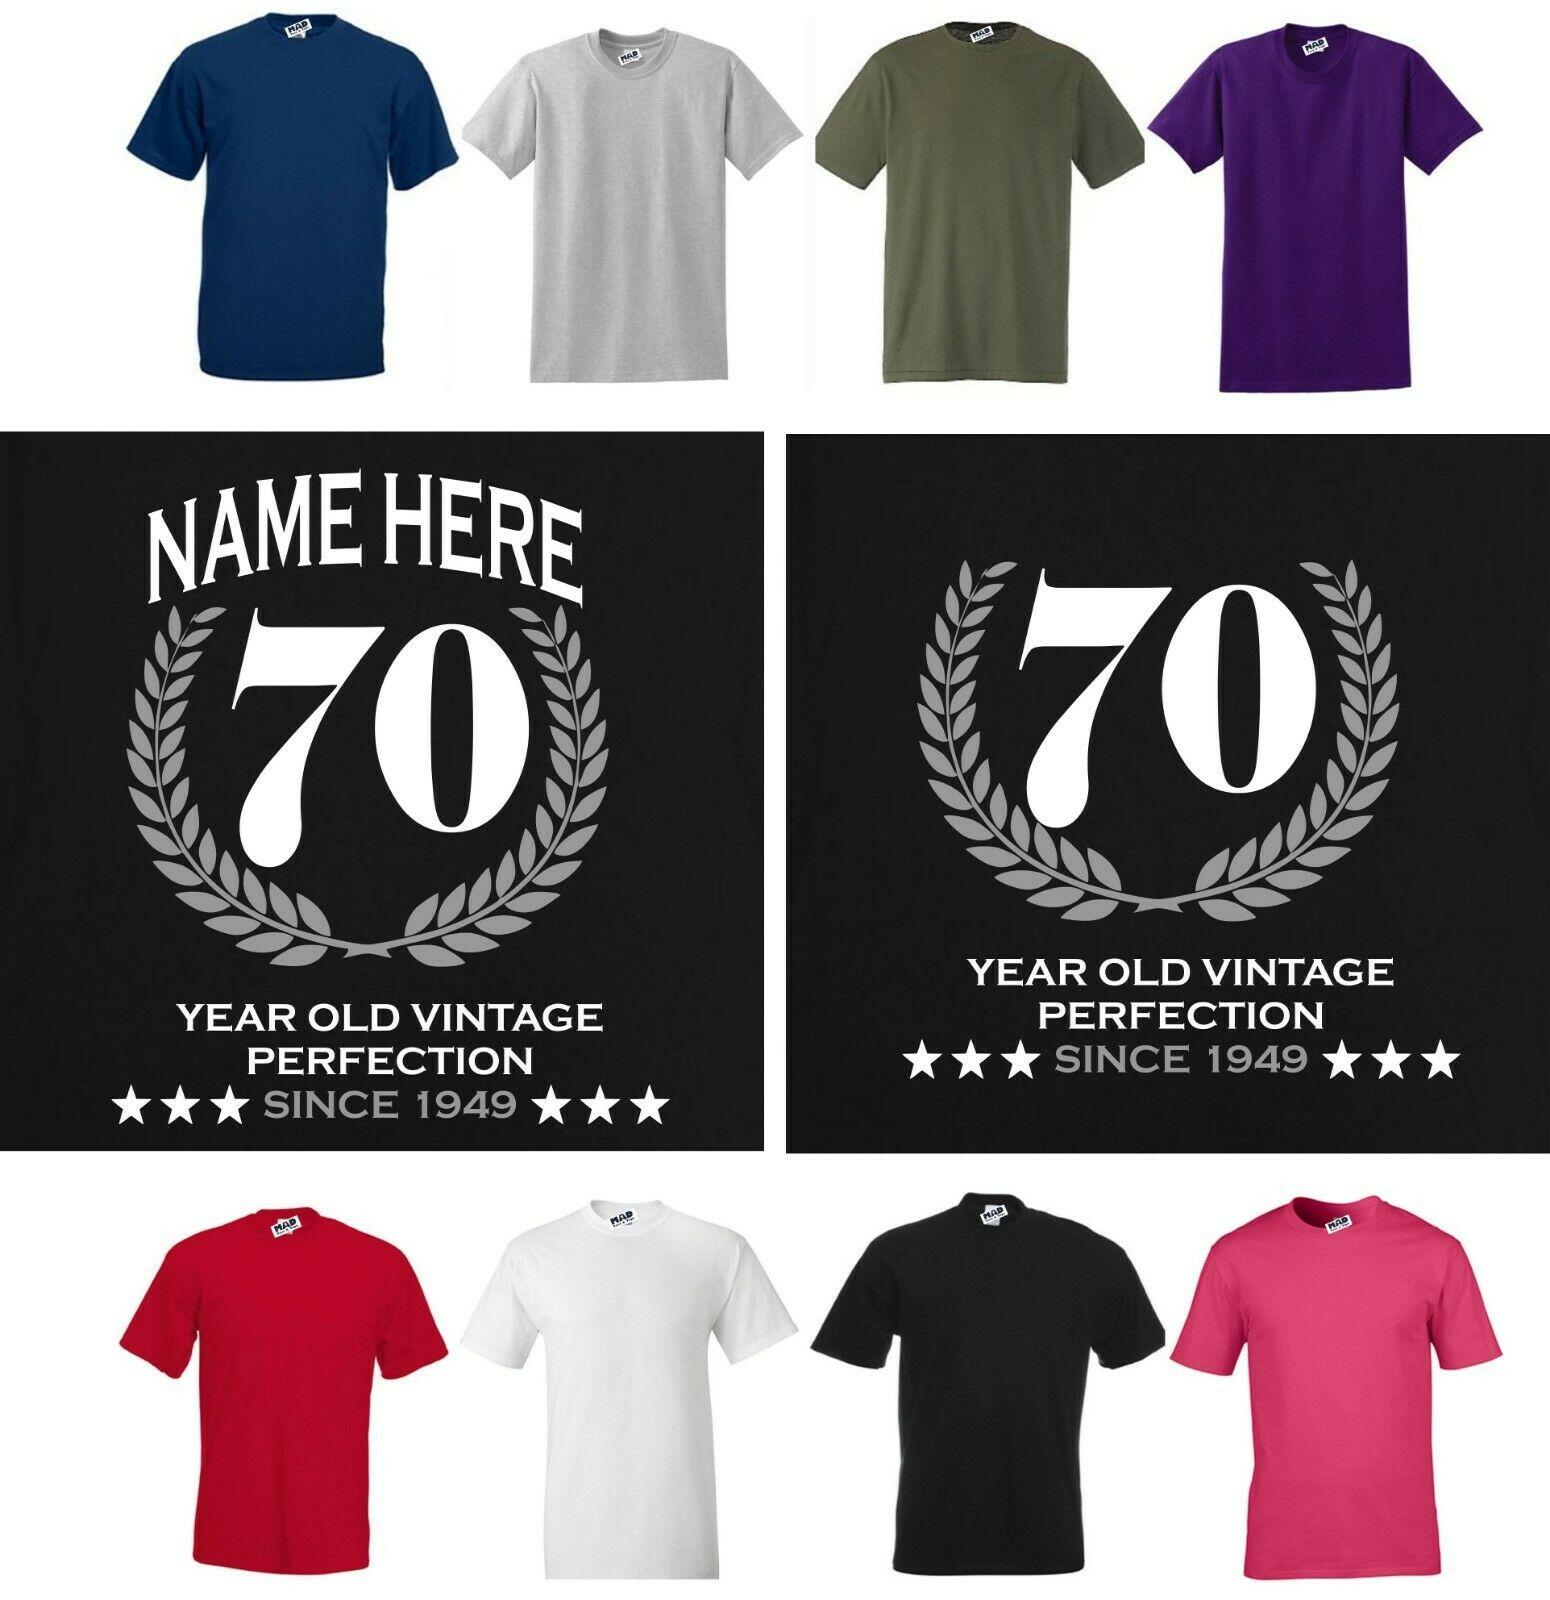 e71472aa4 70 YEAR OLD VINTAGE PERFECTION 1949 Personalised Birthday T Shirt OR ANY  YEAR Men Women Unisex Fashion Tshirt Black Tees T Shirts Ts Shirt From ...